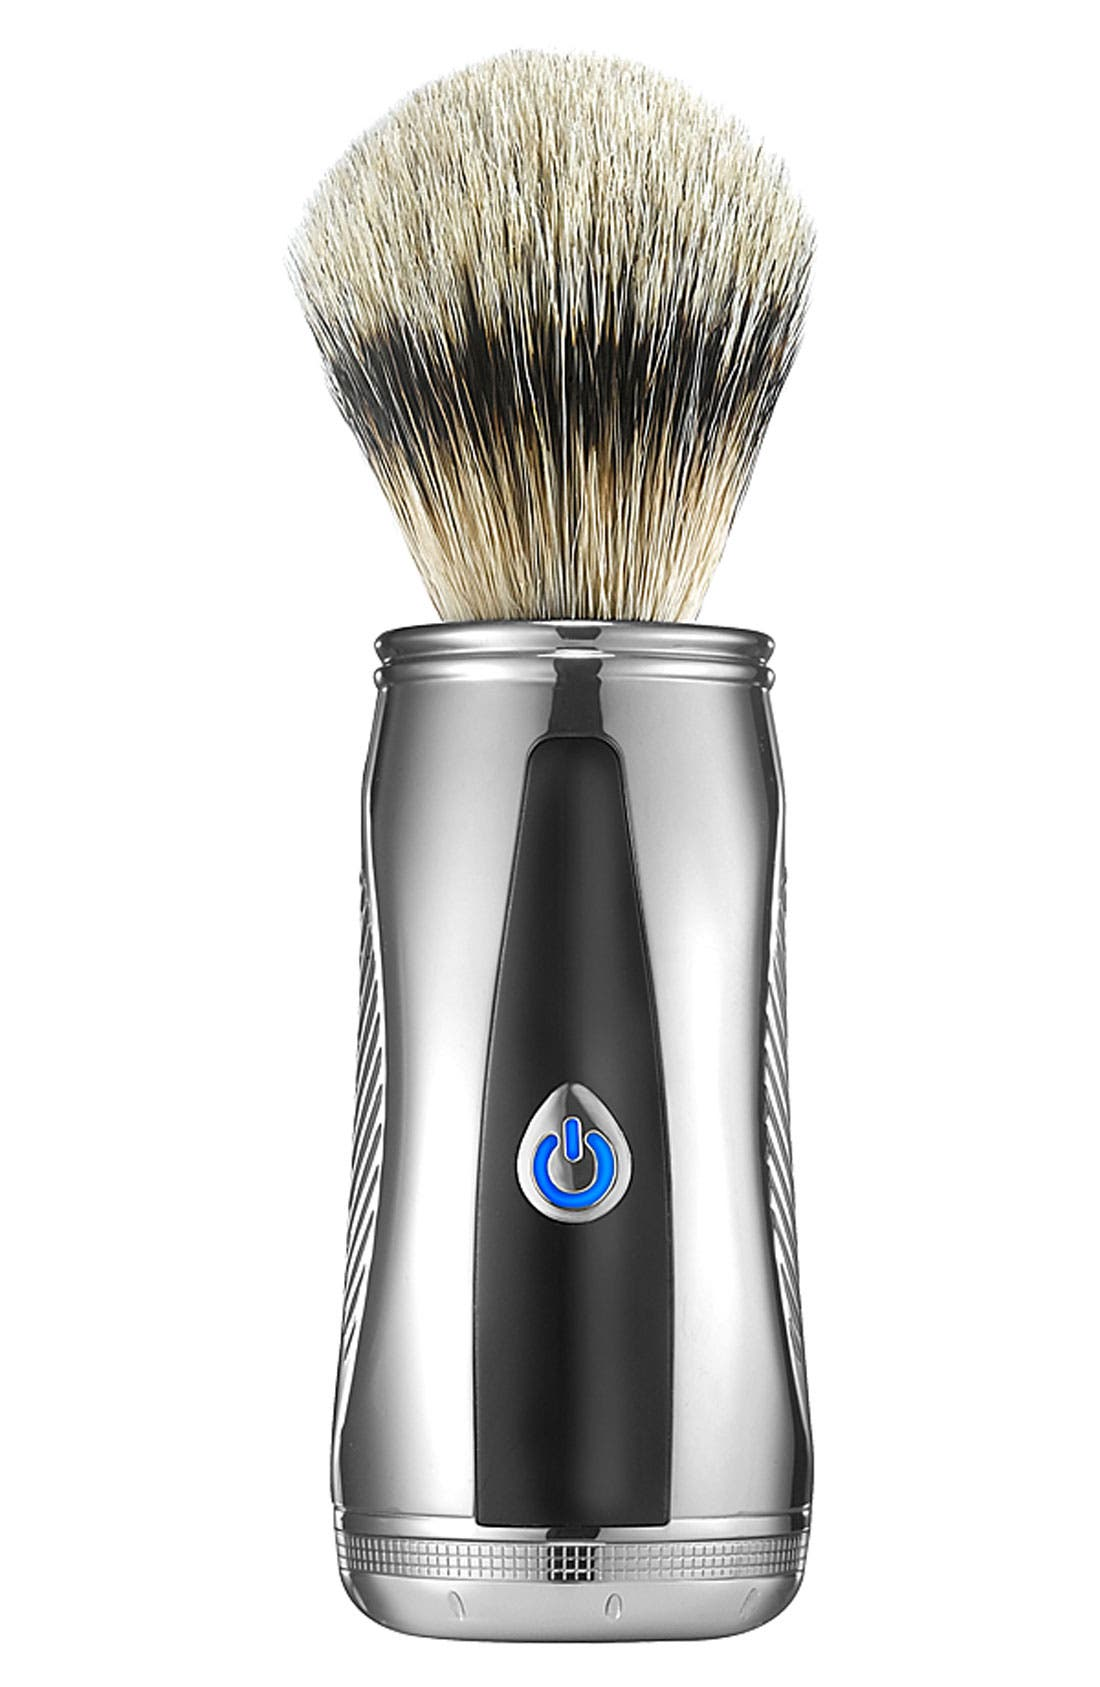 'Power Shave Collection' Fine Badger Power Brush,                             Main thumbnail 1, color,                             000